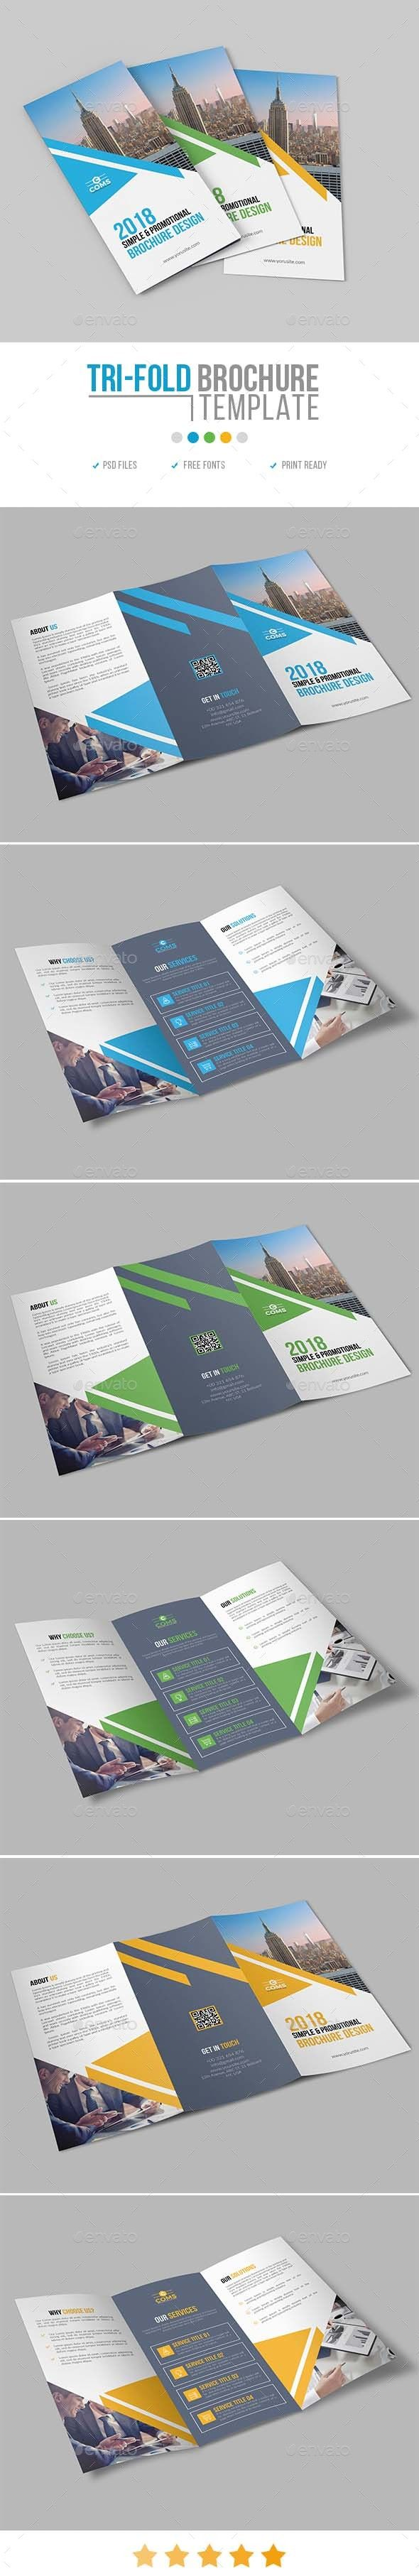 Tri-Fold Brochure Template PSD - A4 & US Letter Sizes